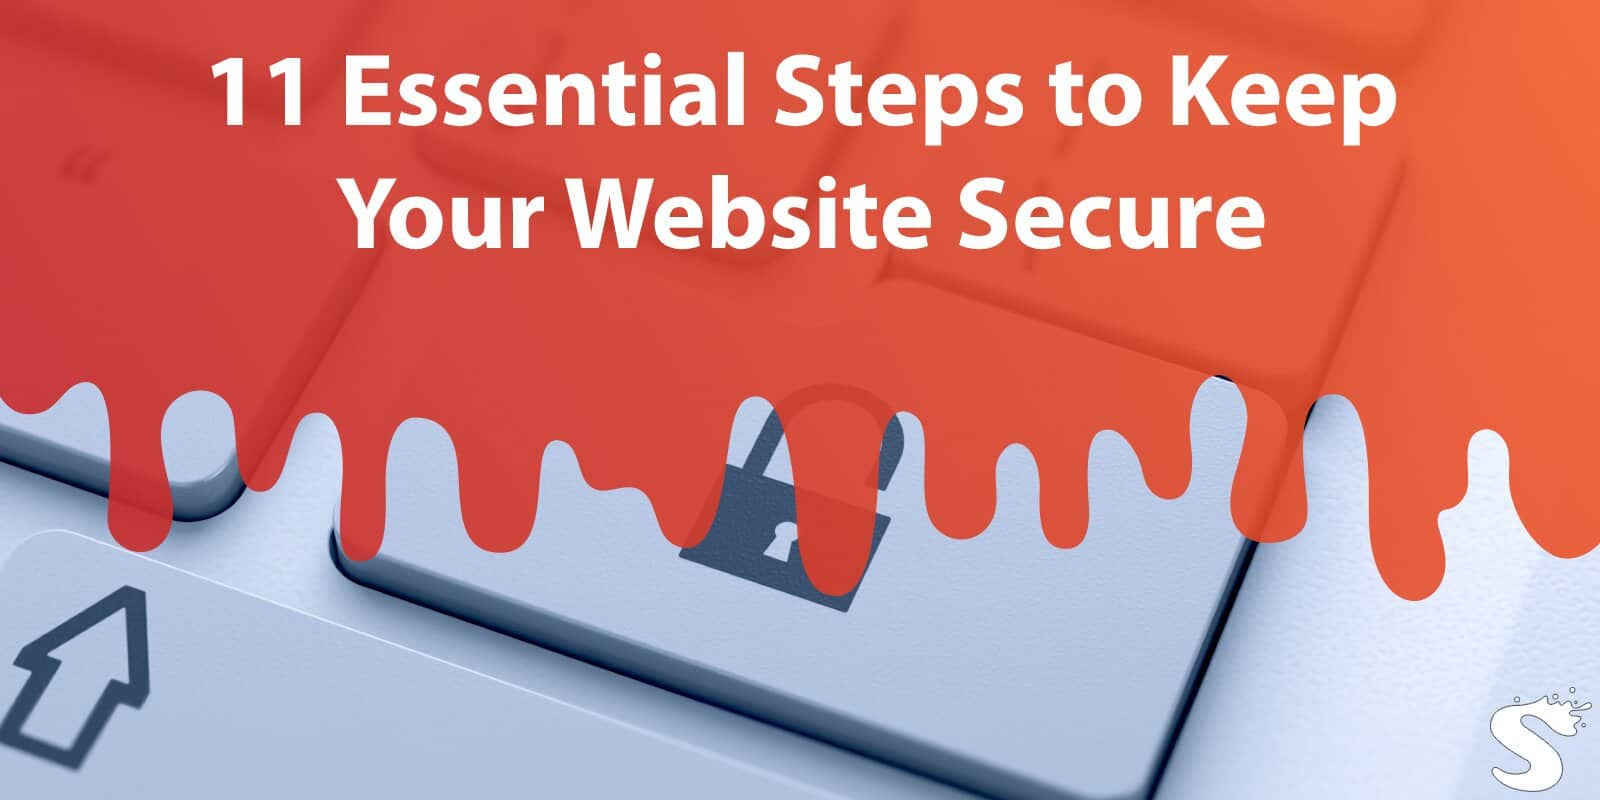 11 Essential Steps to Keep Your Website Secure